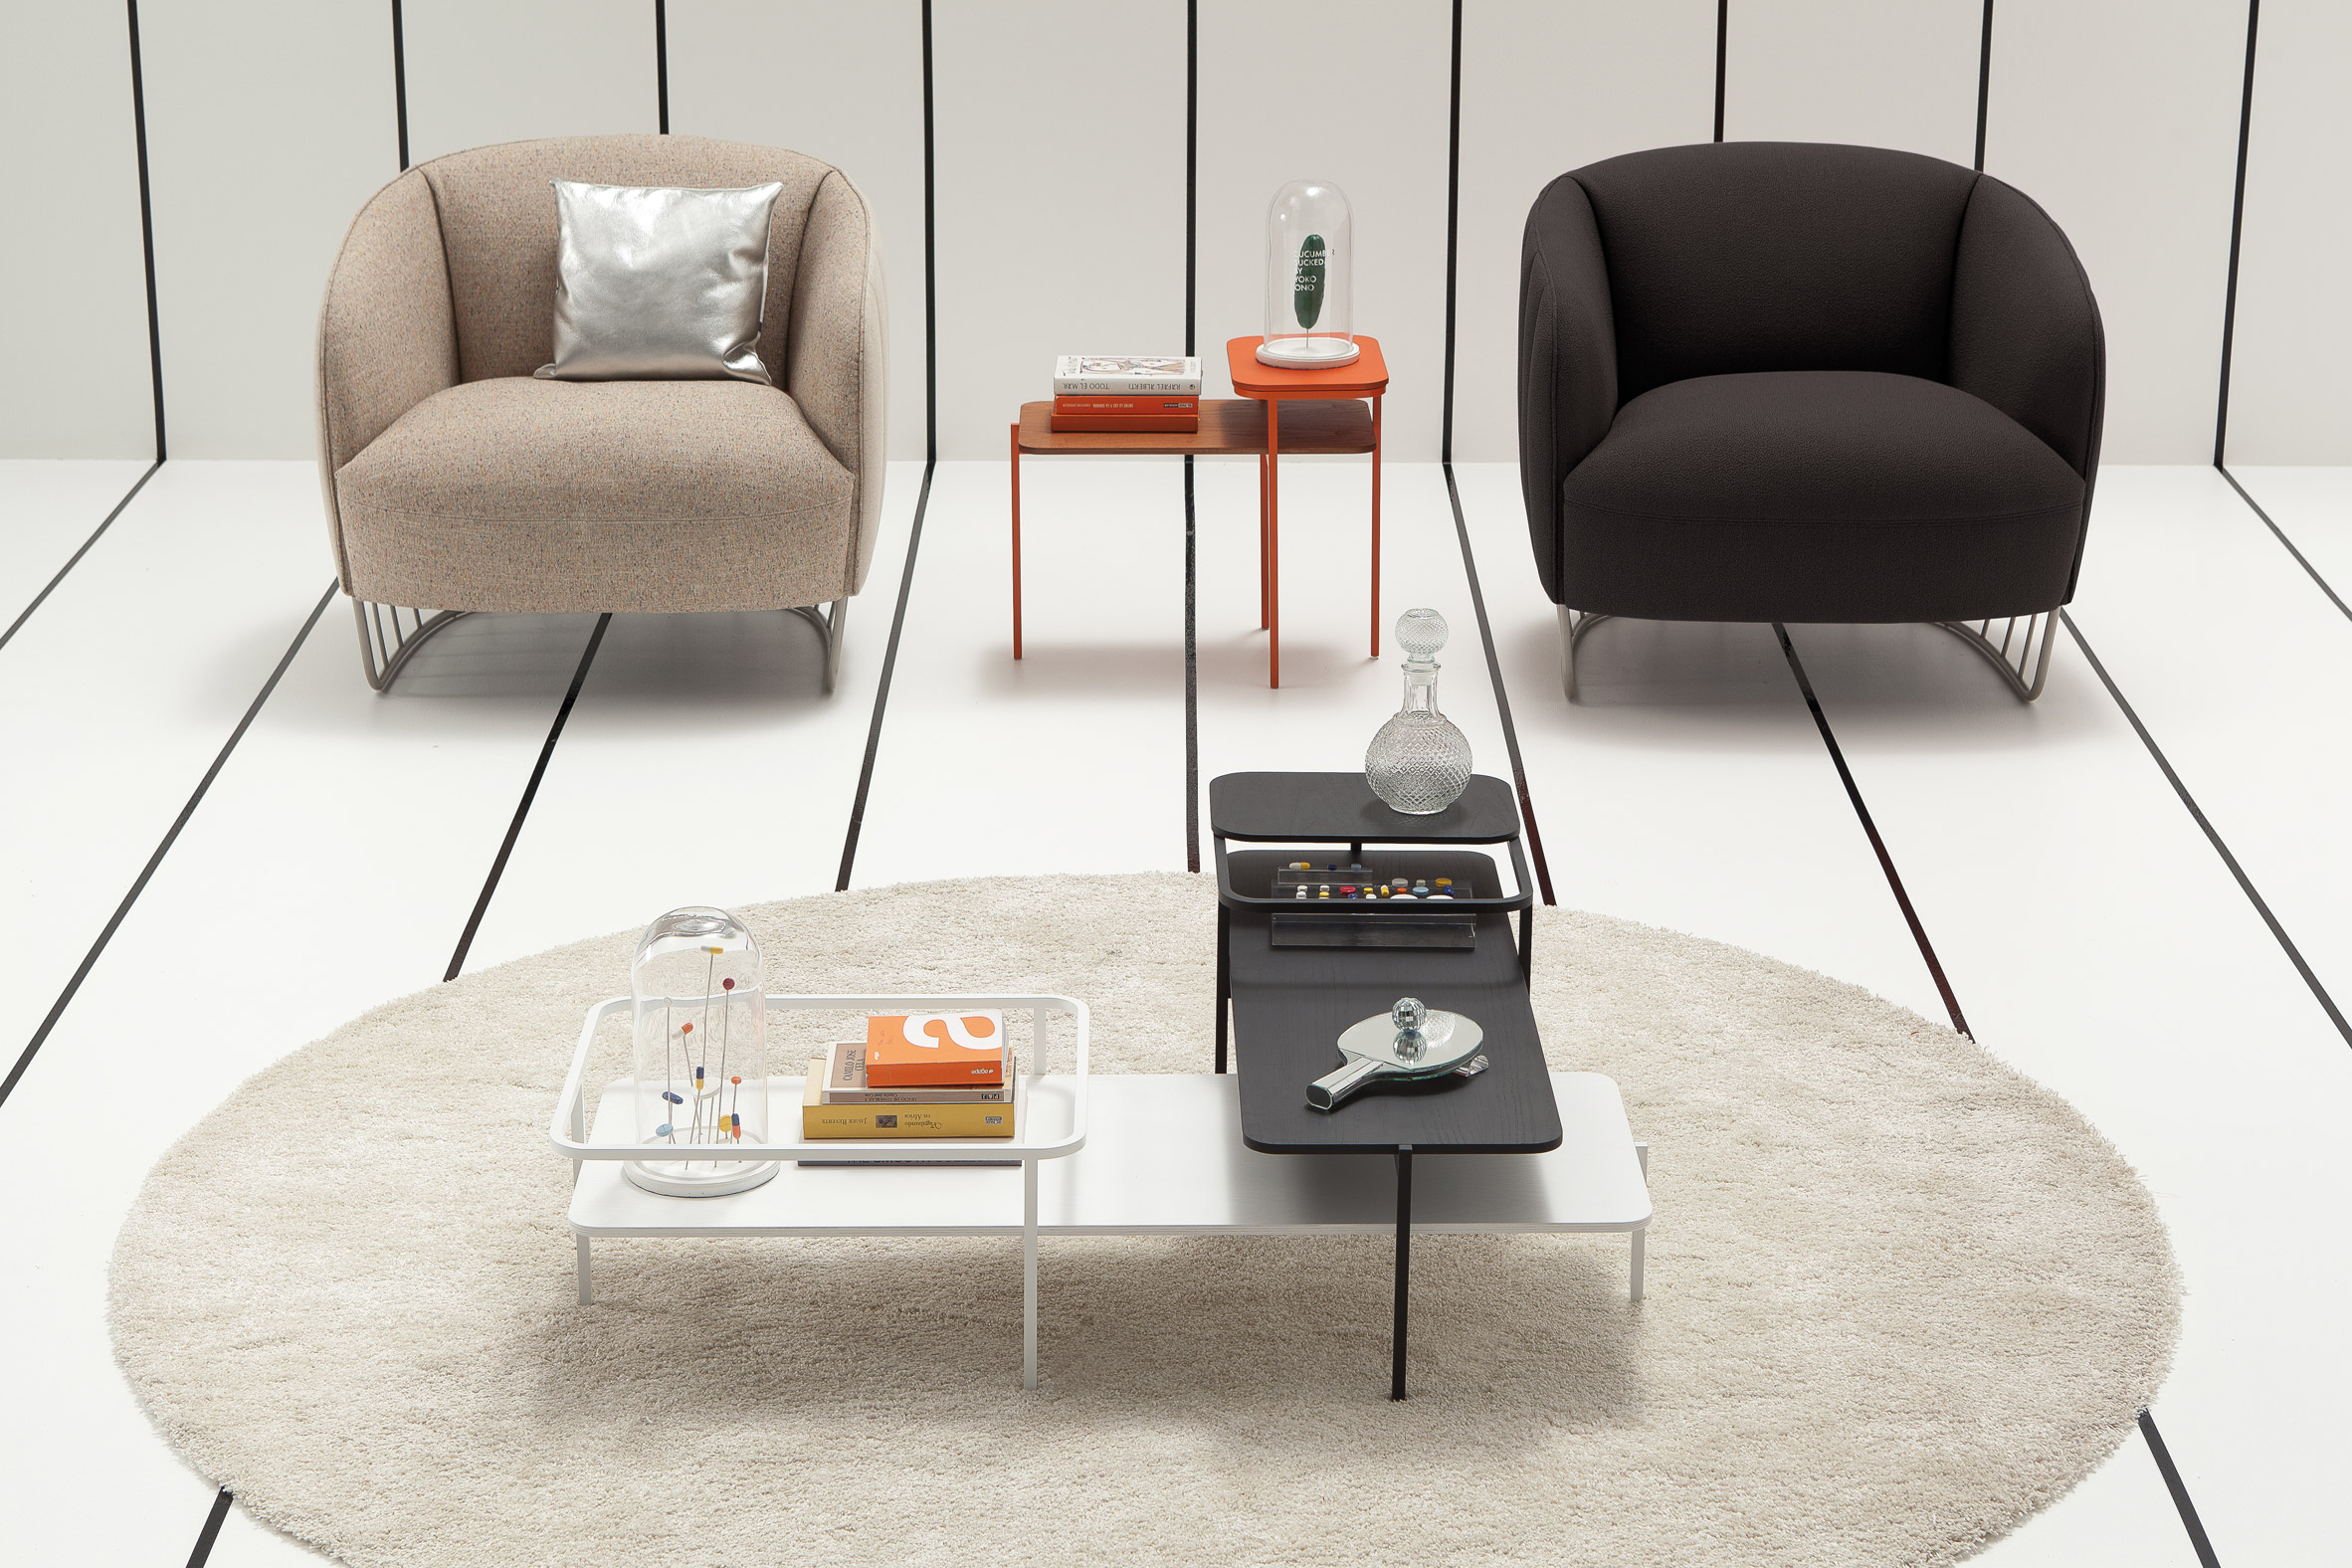 tonella-chair-collection-sancal-futura_dezeen_2364_col_4